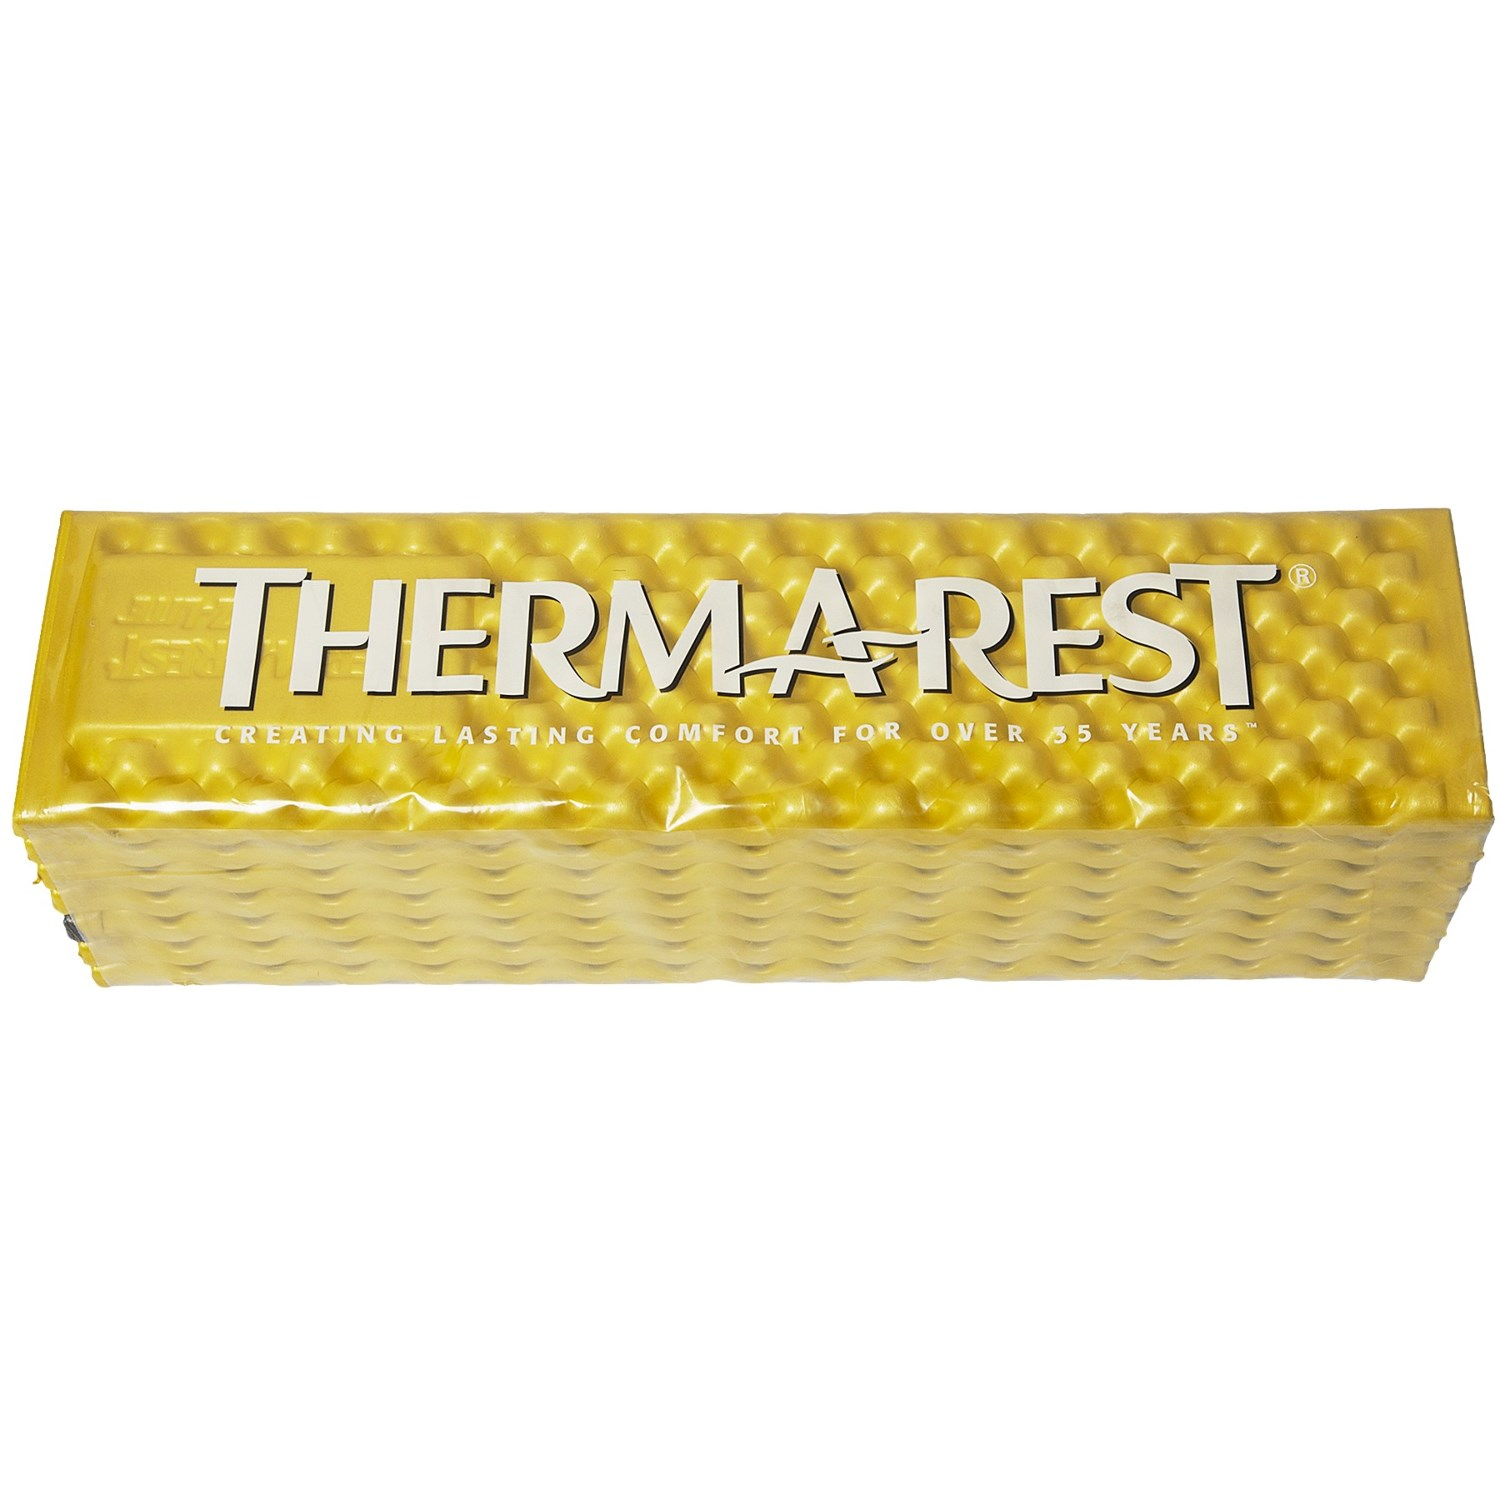 Thermarest Mattress Cover ... Rest Z Lite Sol Sleeping Pad 75000 Therm A Rest | Bed Mattress Sale